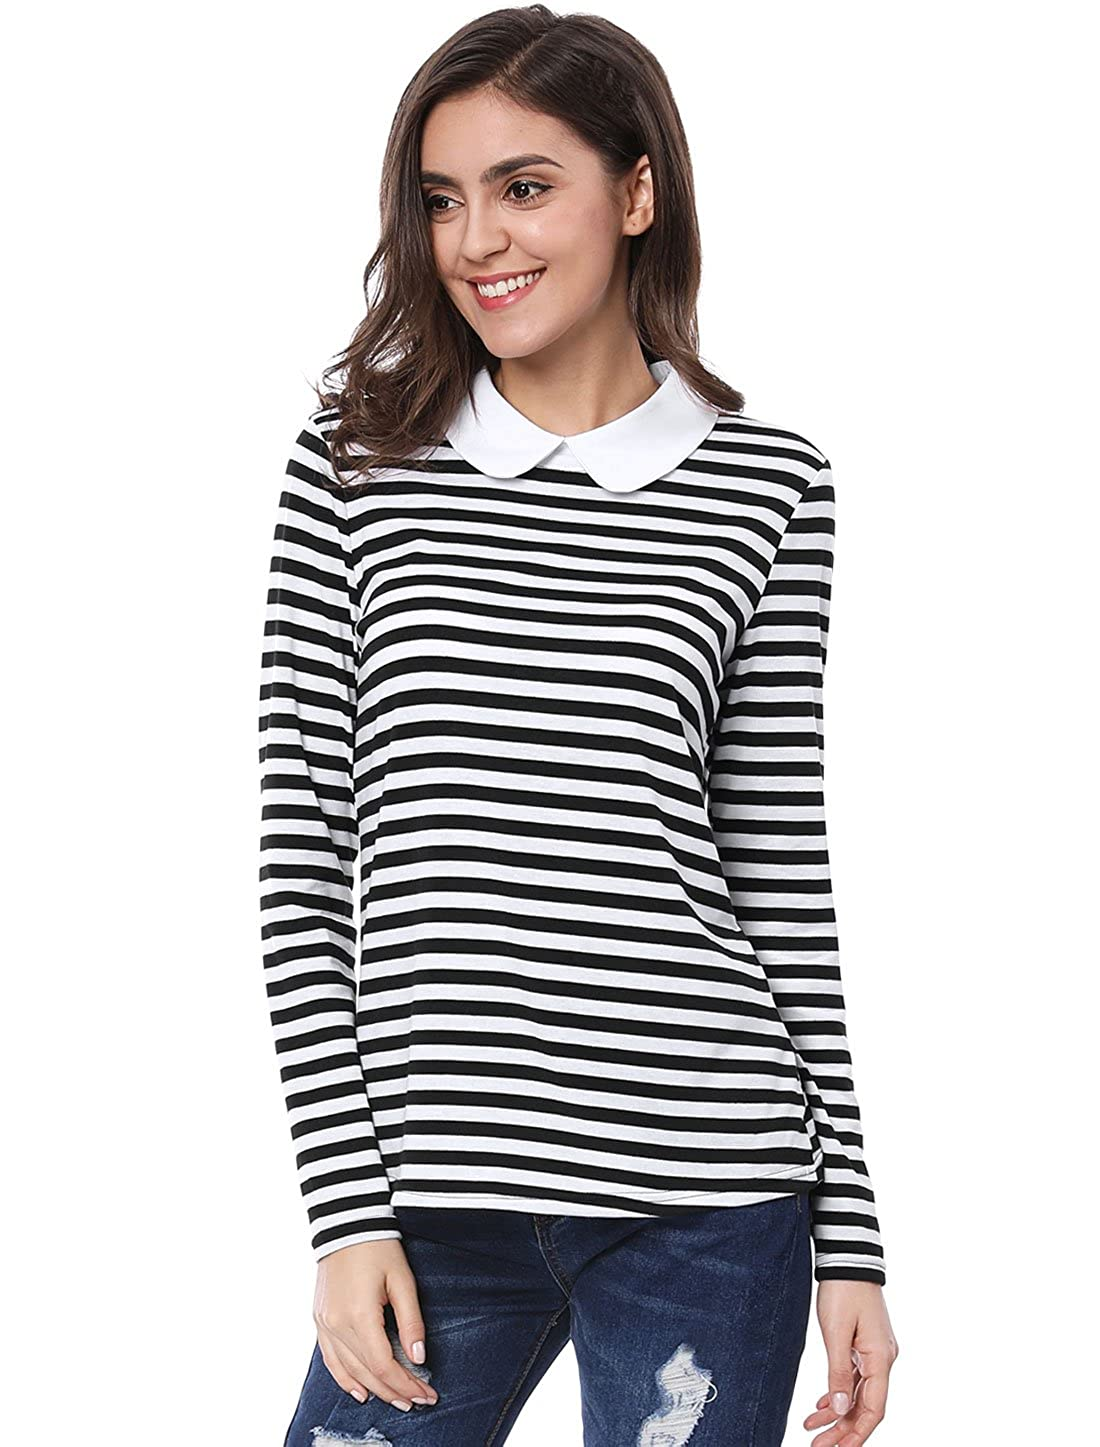 1d33db73f4a7e2 Allegra K Women's Long Sleeves Peter Pan Contrast Striped Blouse Top at Amazon  Women's Clothing store: